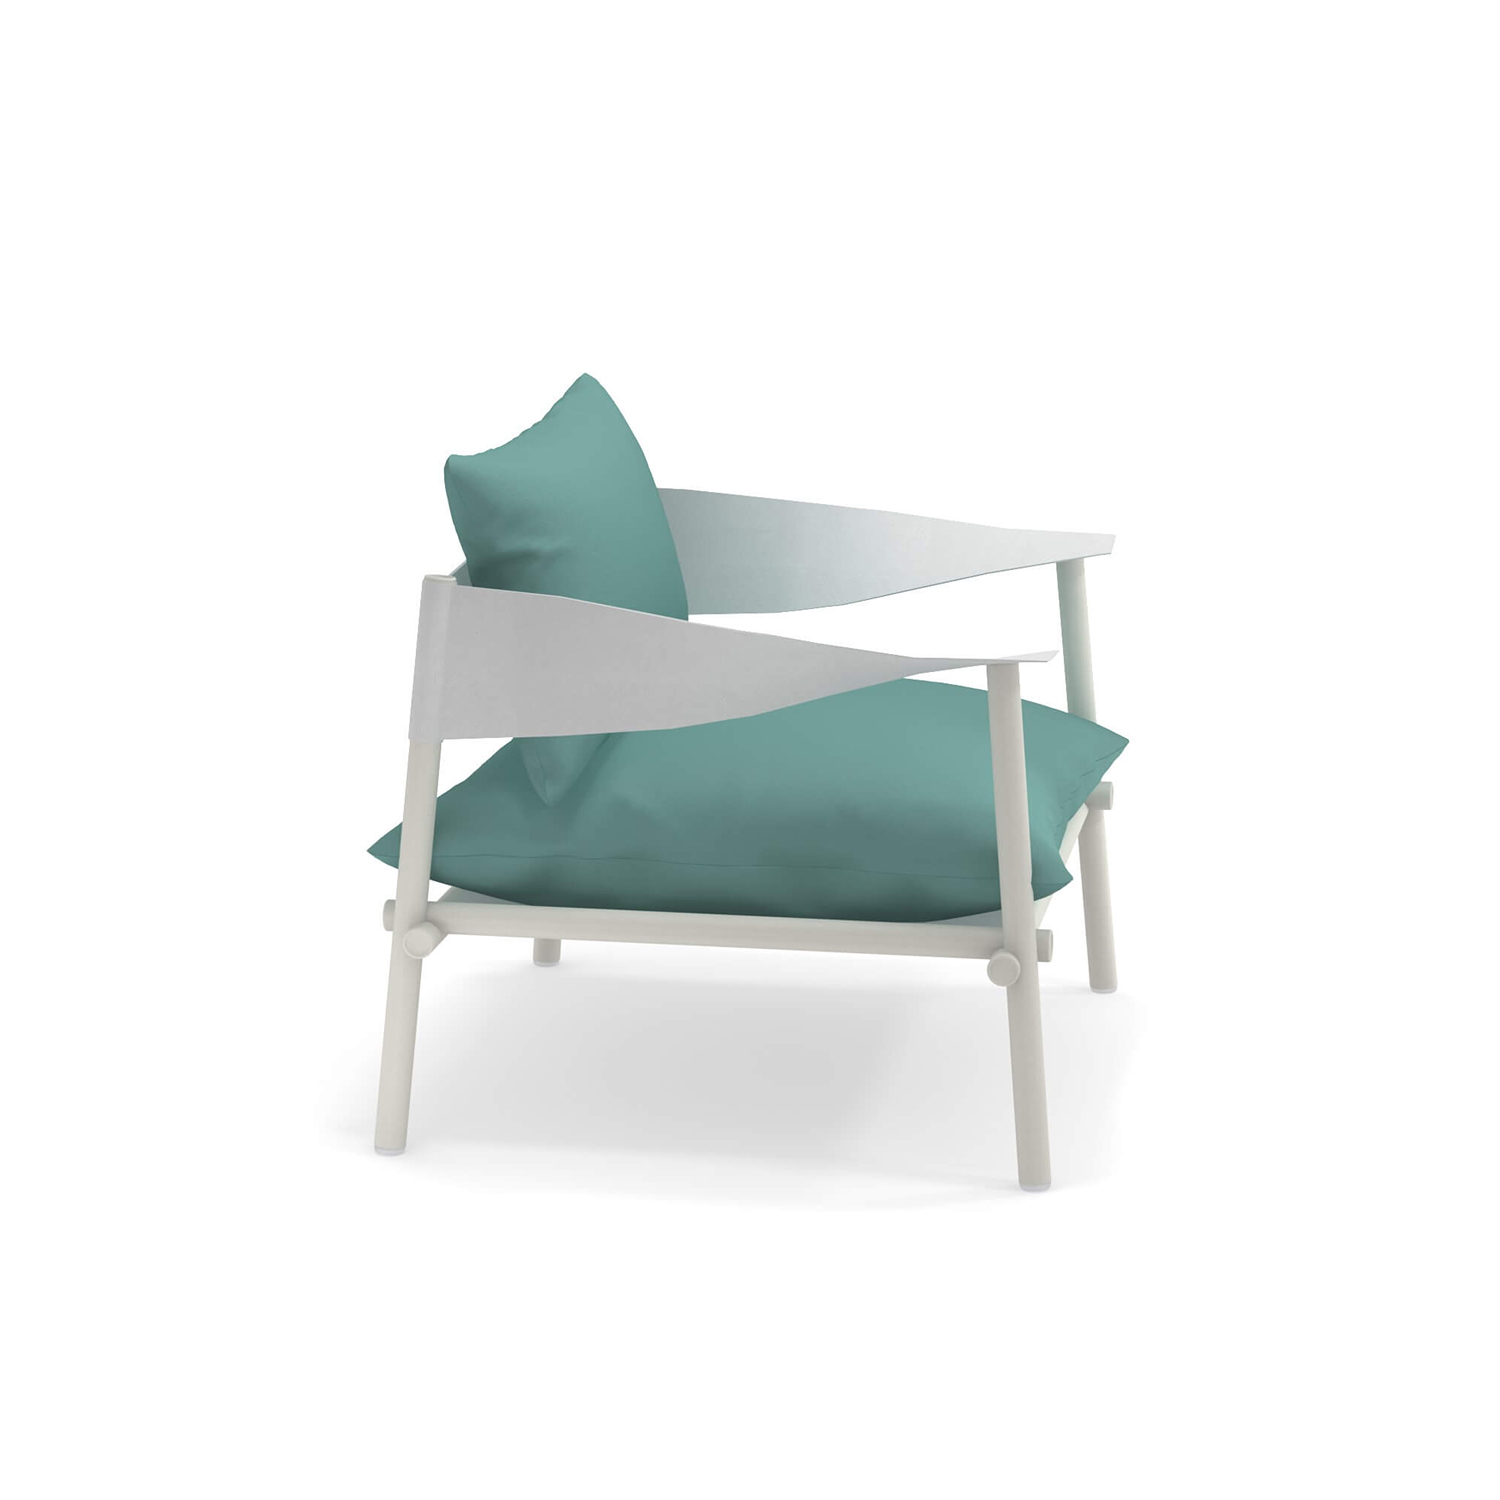 Terramare Lounge Chair - <p>Welcoming shapes and wide dimensions characterise the Terramare collection by Studio Chiaramonte-Marin, ideal for cosy and personal settings both indoors and outdoors. A complete range of furniture for both dining and living areas.</p>This lounge chair has a frame made from aluminium and armrests in eco leather. 